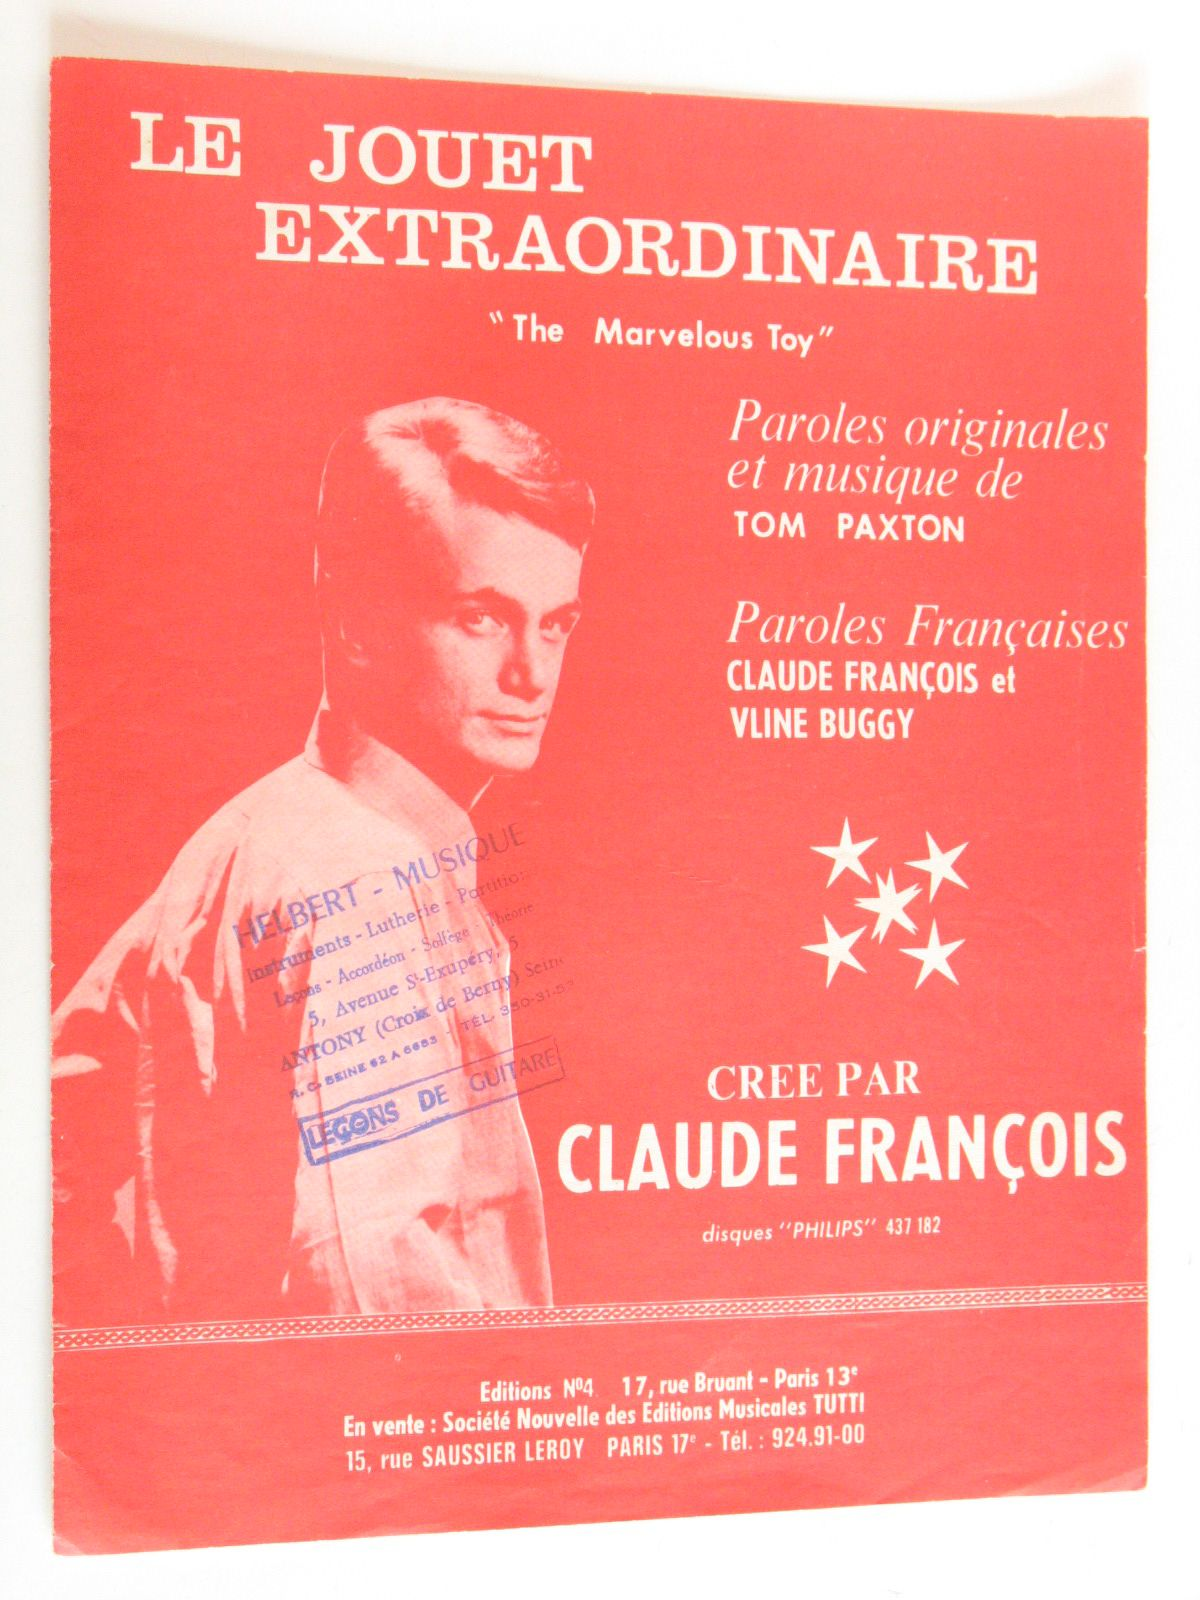 Le Jouet Extraordinaire The Marvelous Toy Interprète Claude François Rakuten